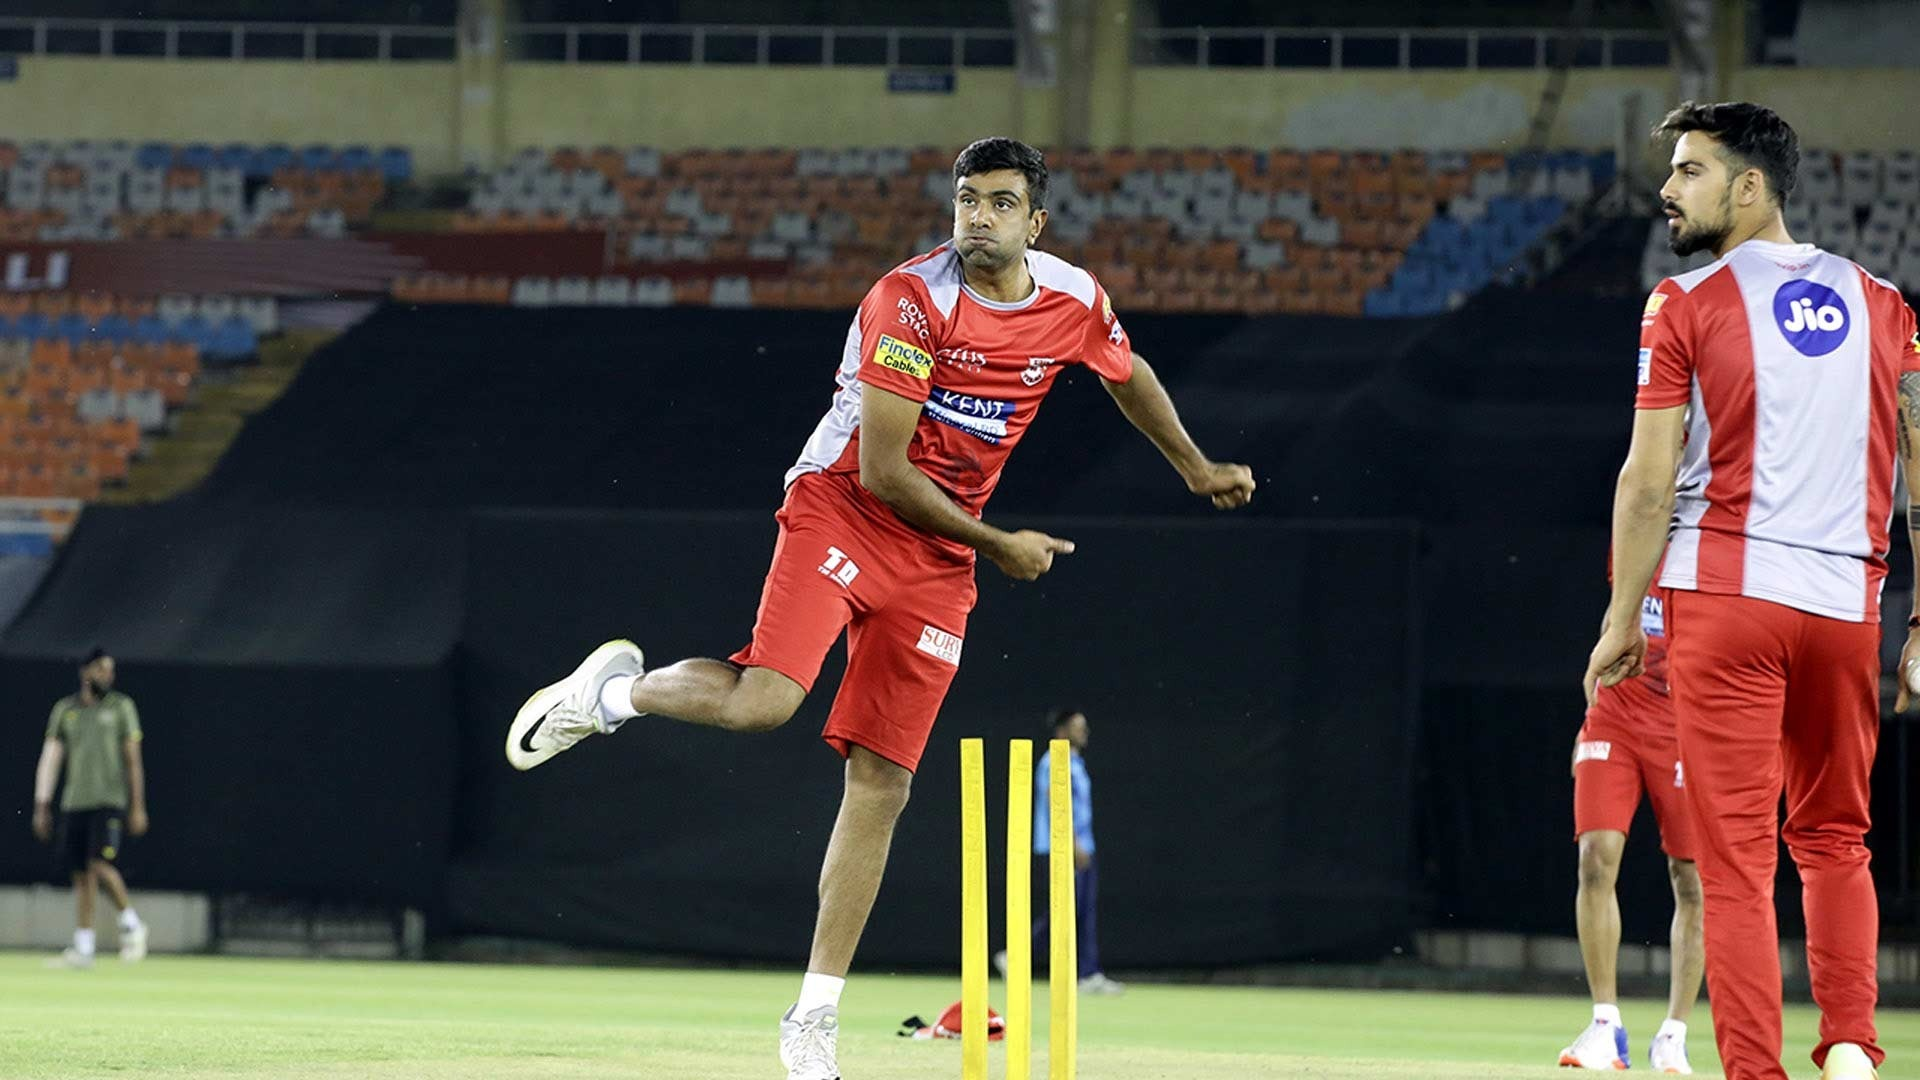 IPL 2018: Ravichandran Ashwin keen to showcase his new variations in IPL 2018